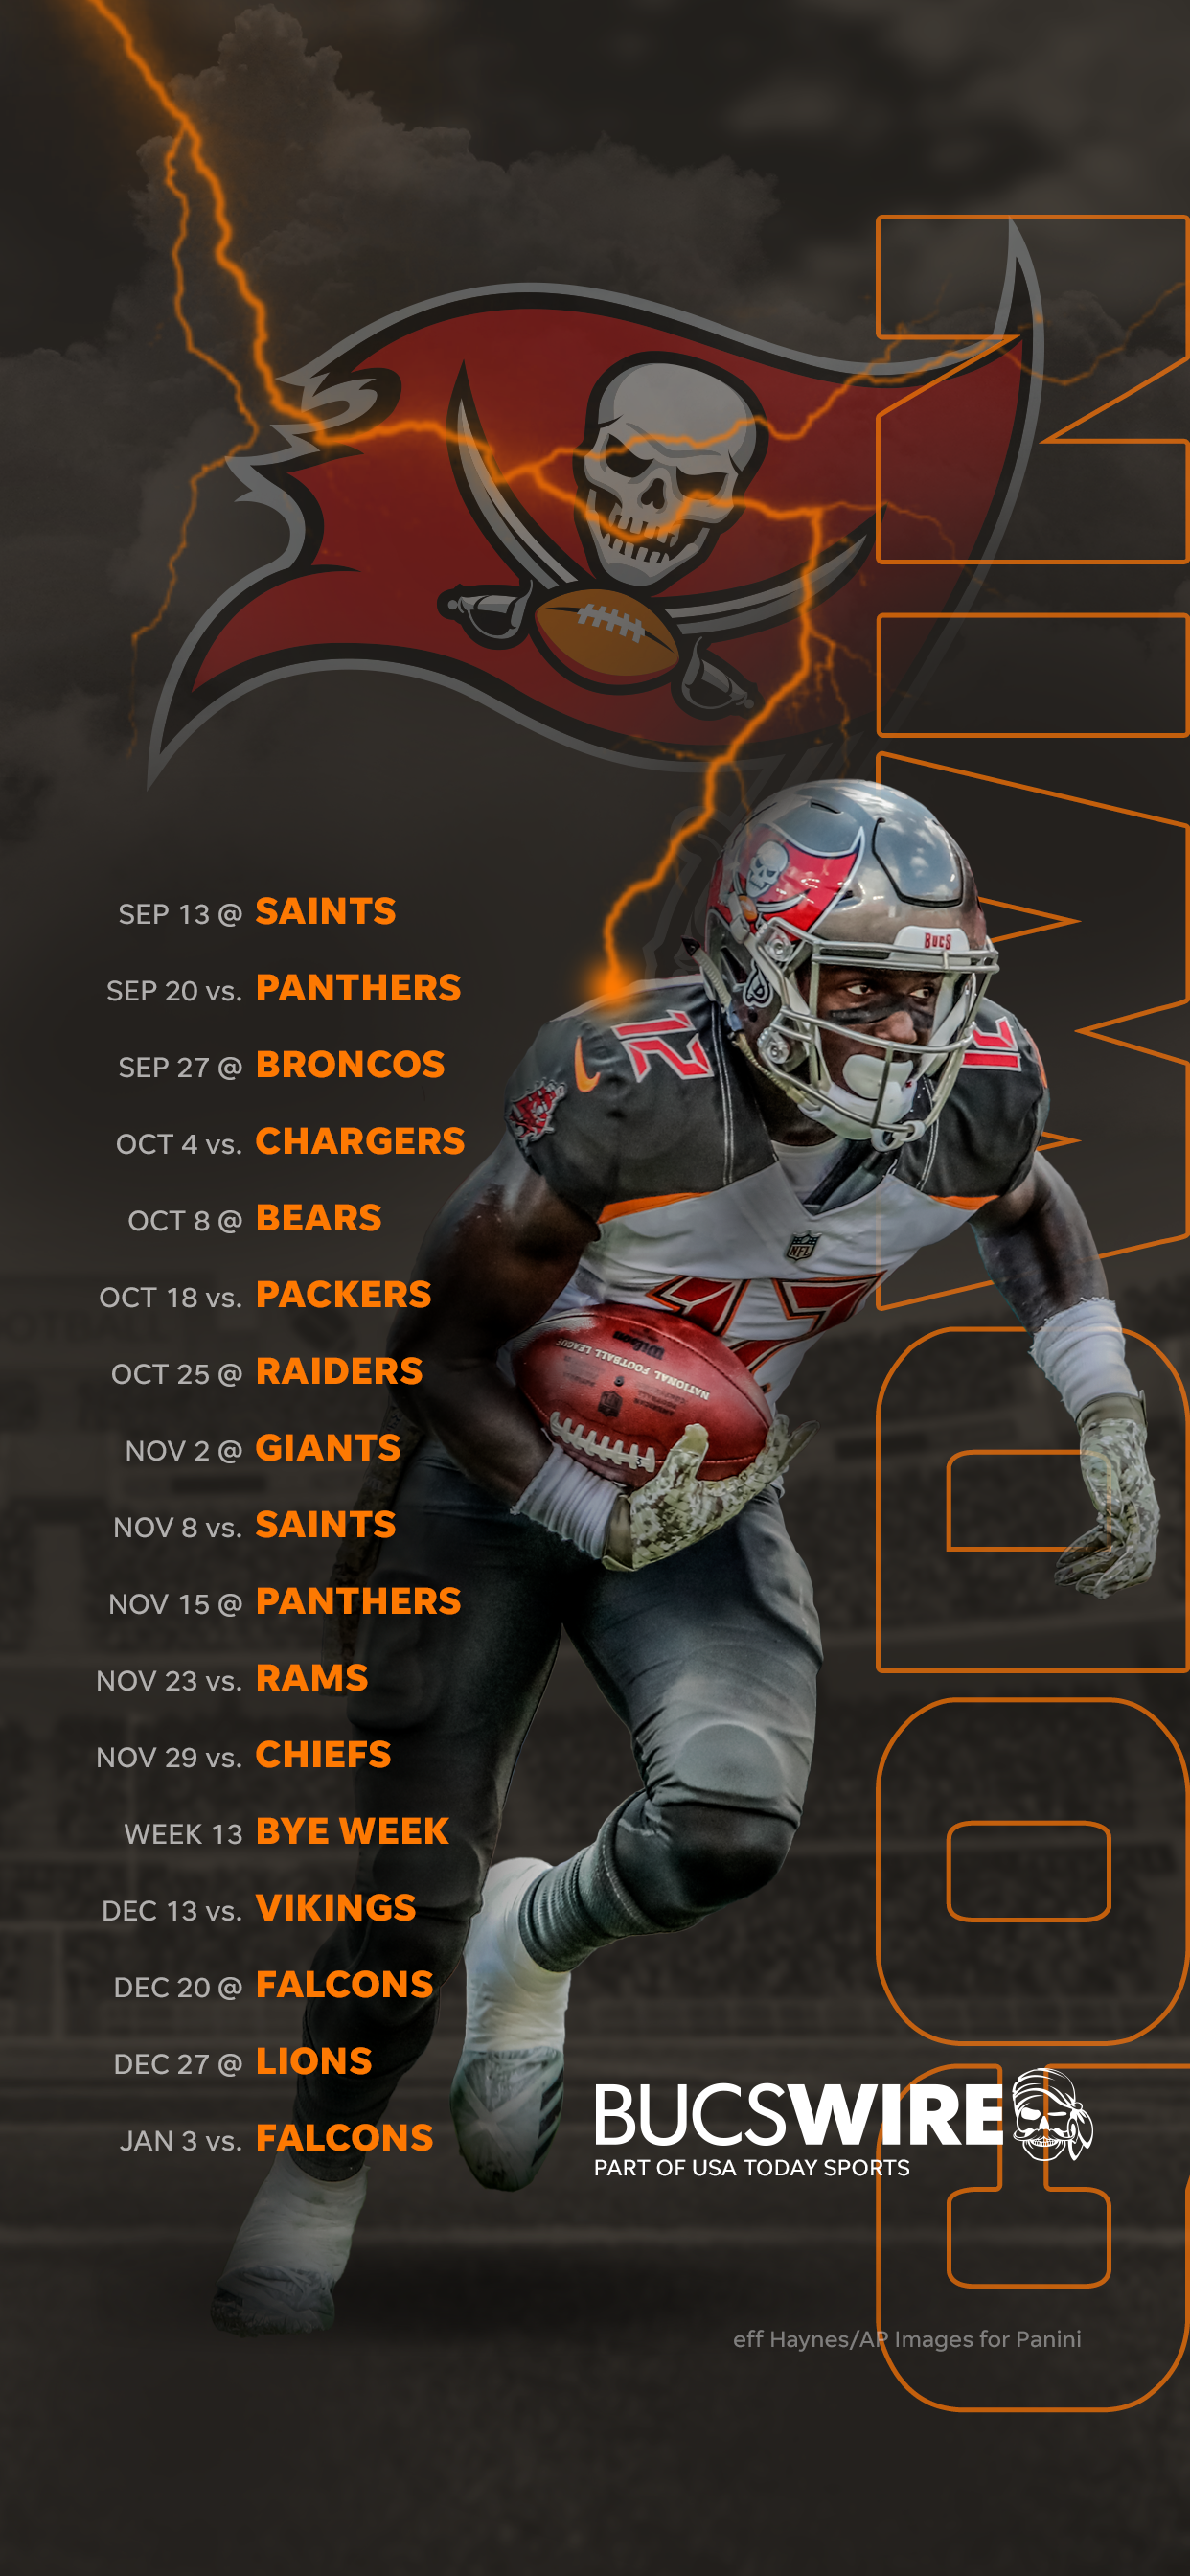 2020 tampa bay buccaneers schedule 2020 tampa bay buccaneers schedule